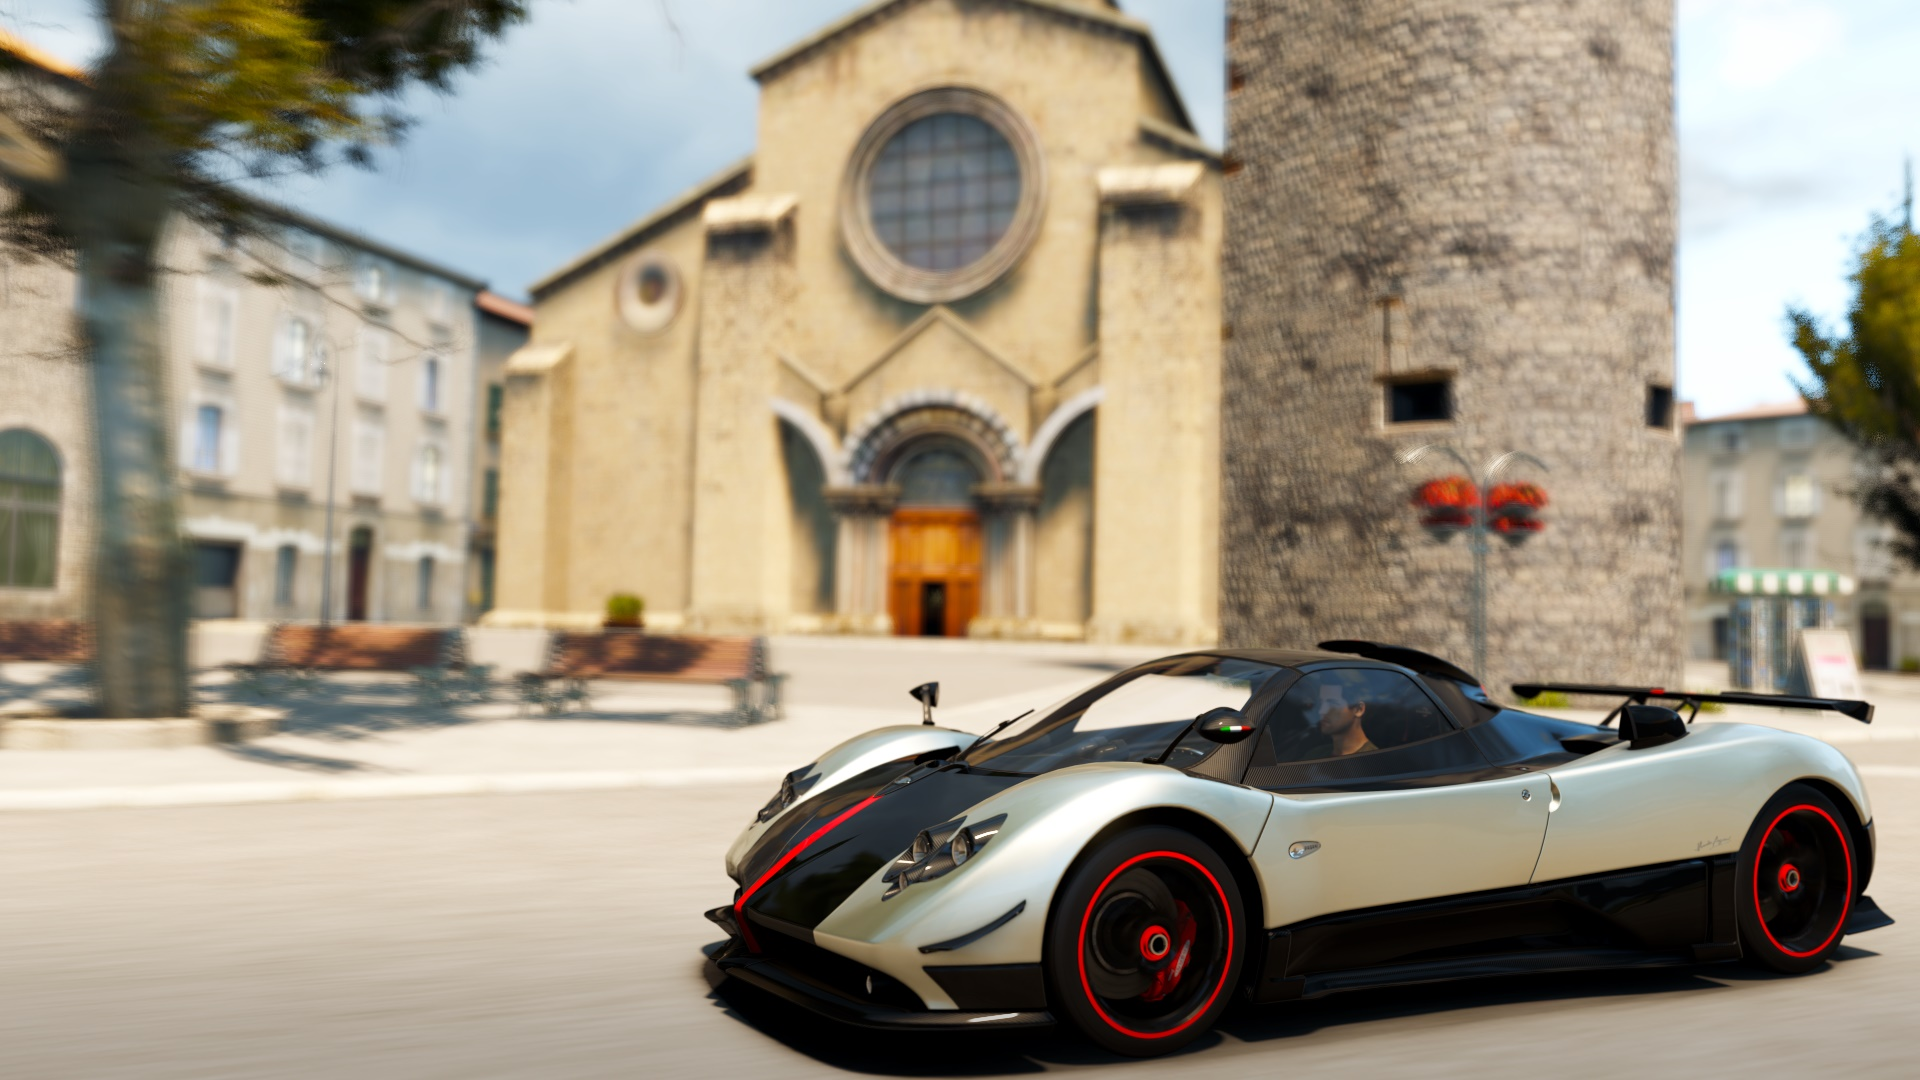 Forza Horizon 2 Wallpaper 1080p Pagani 1920x1080